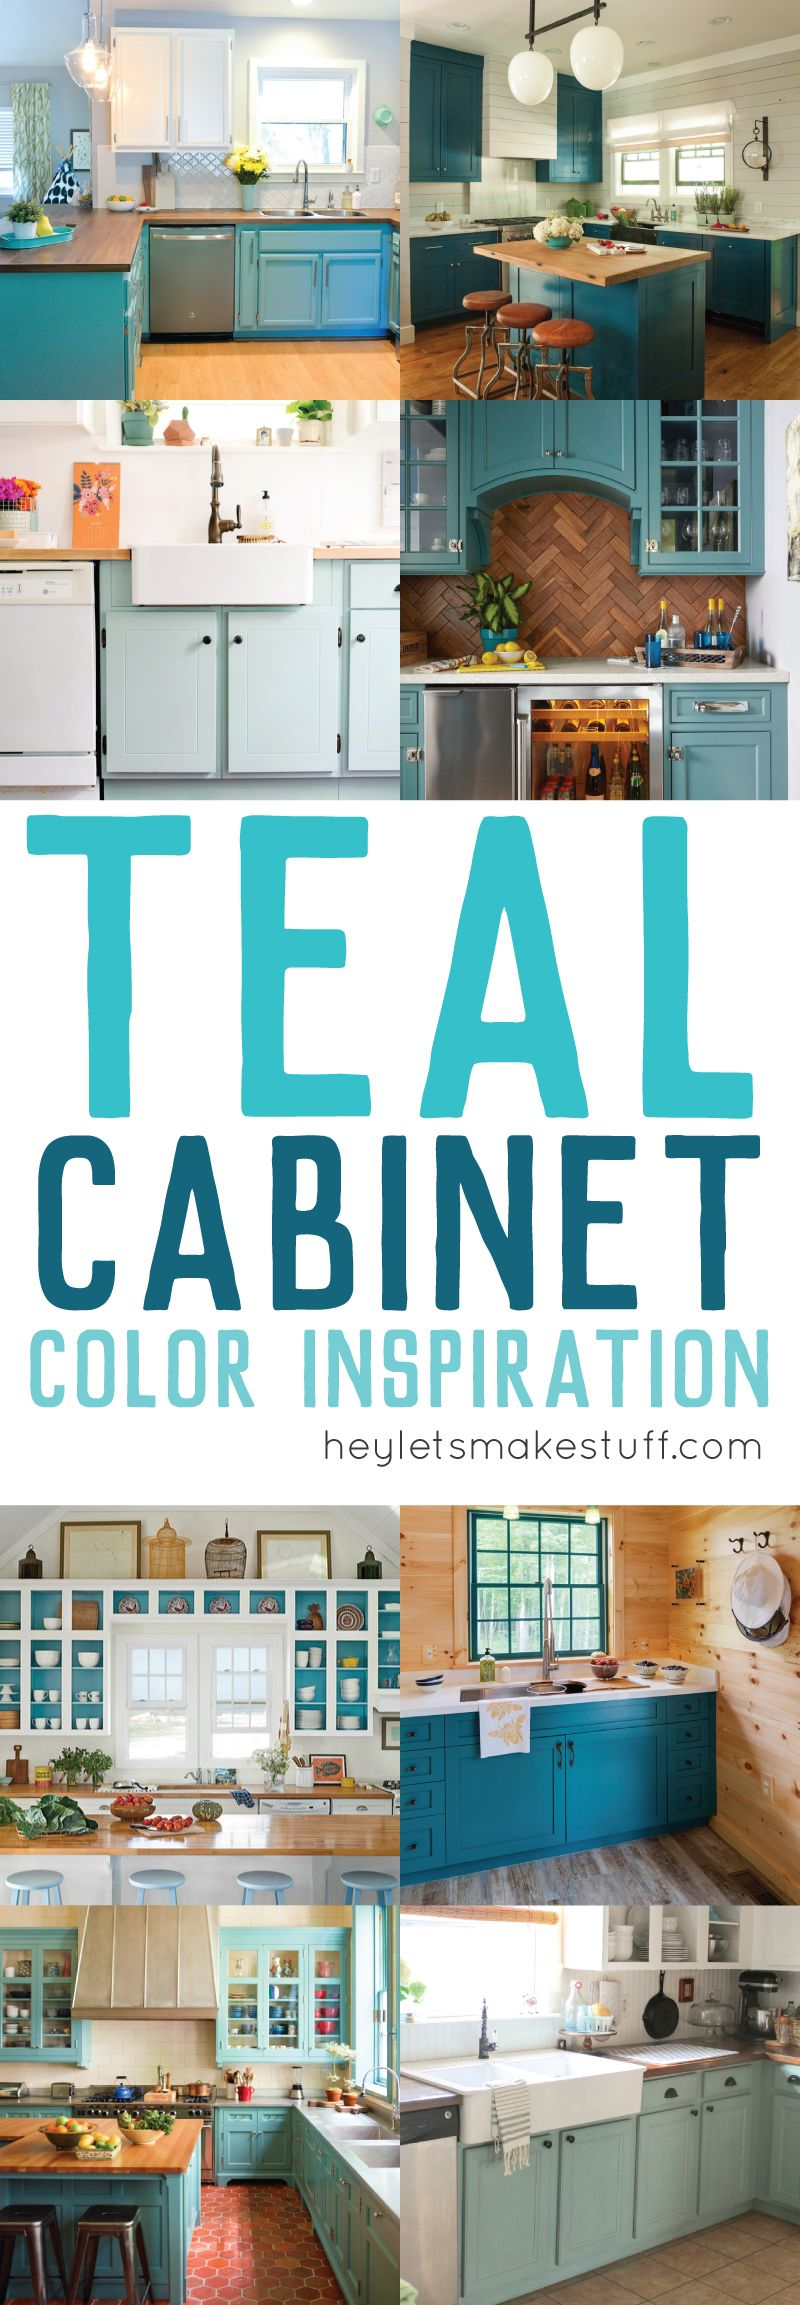 Teal Cabinet Paint Color Inspiration | Teal kitchen, Kitchen paint ...